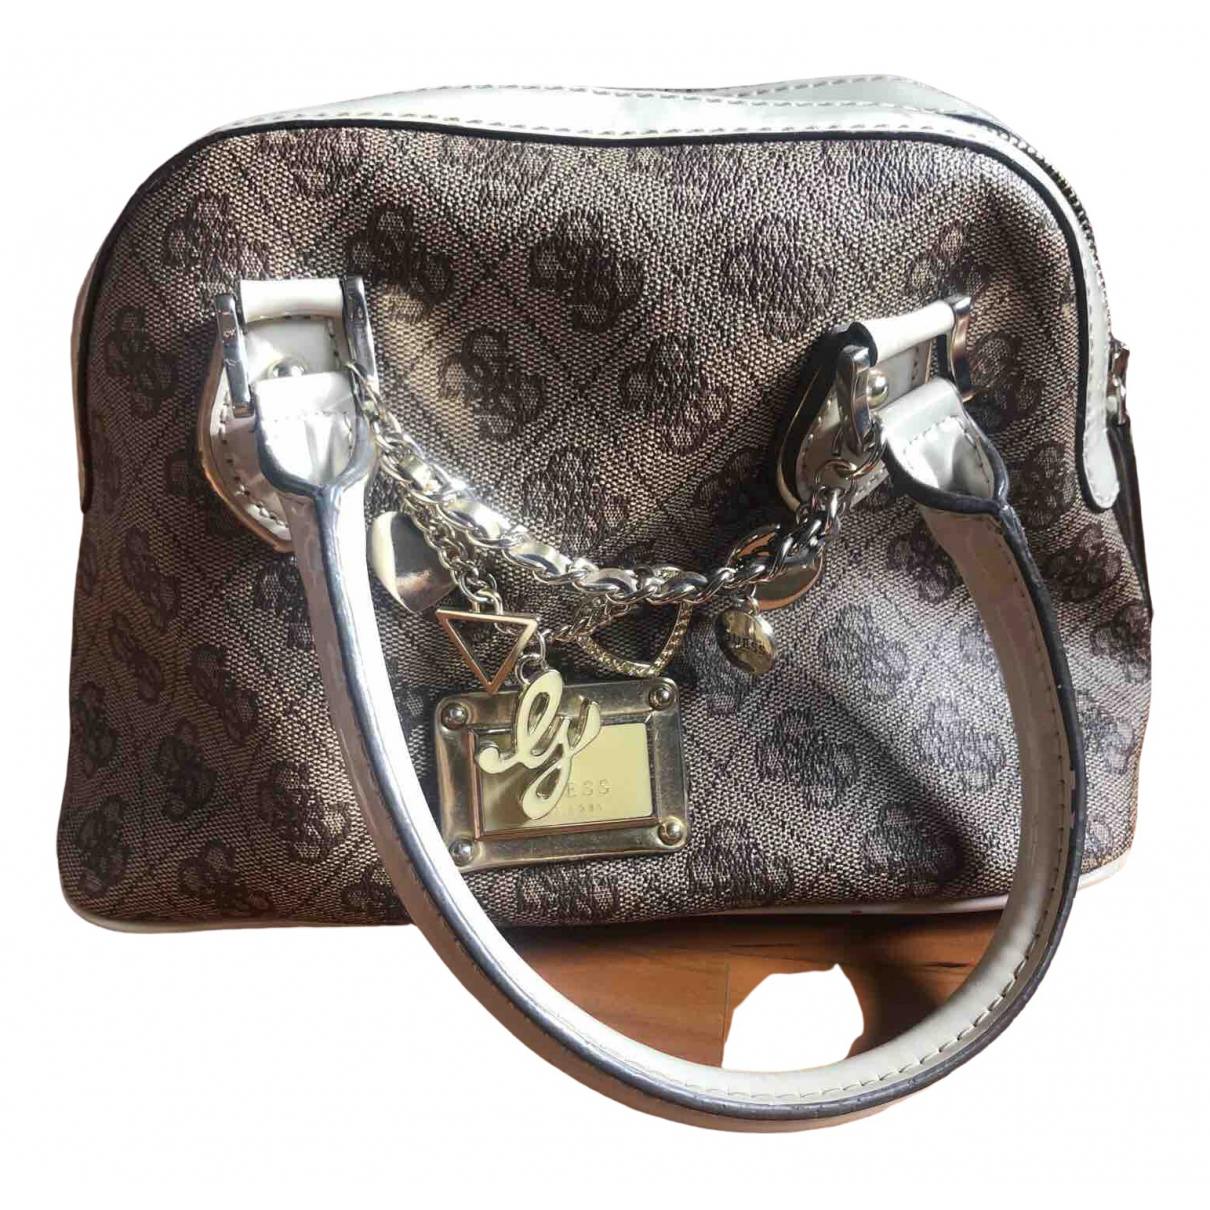 Guess \N Beige handbag for Women \N